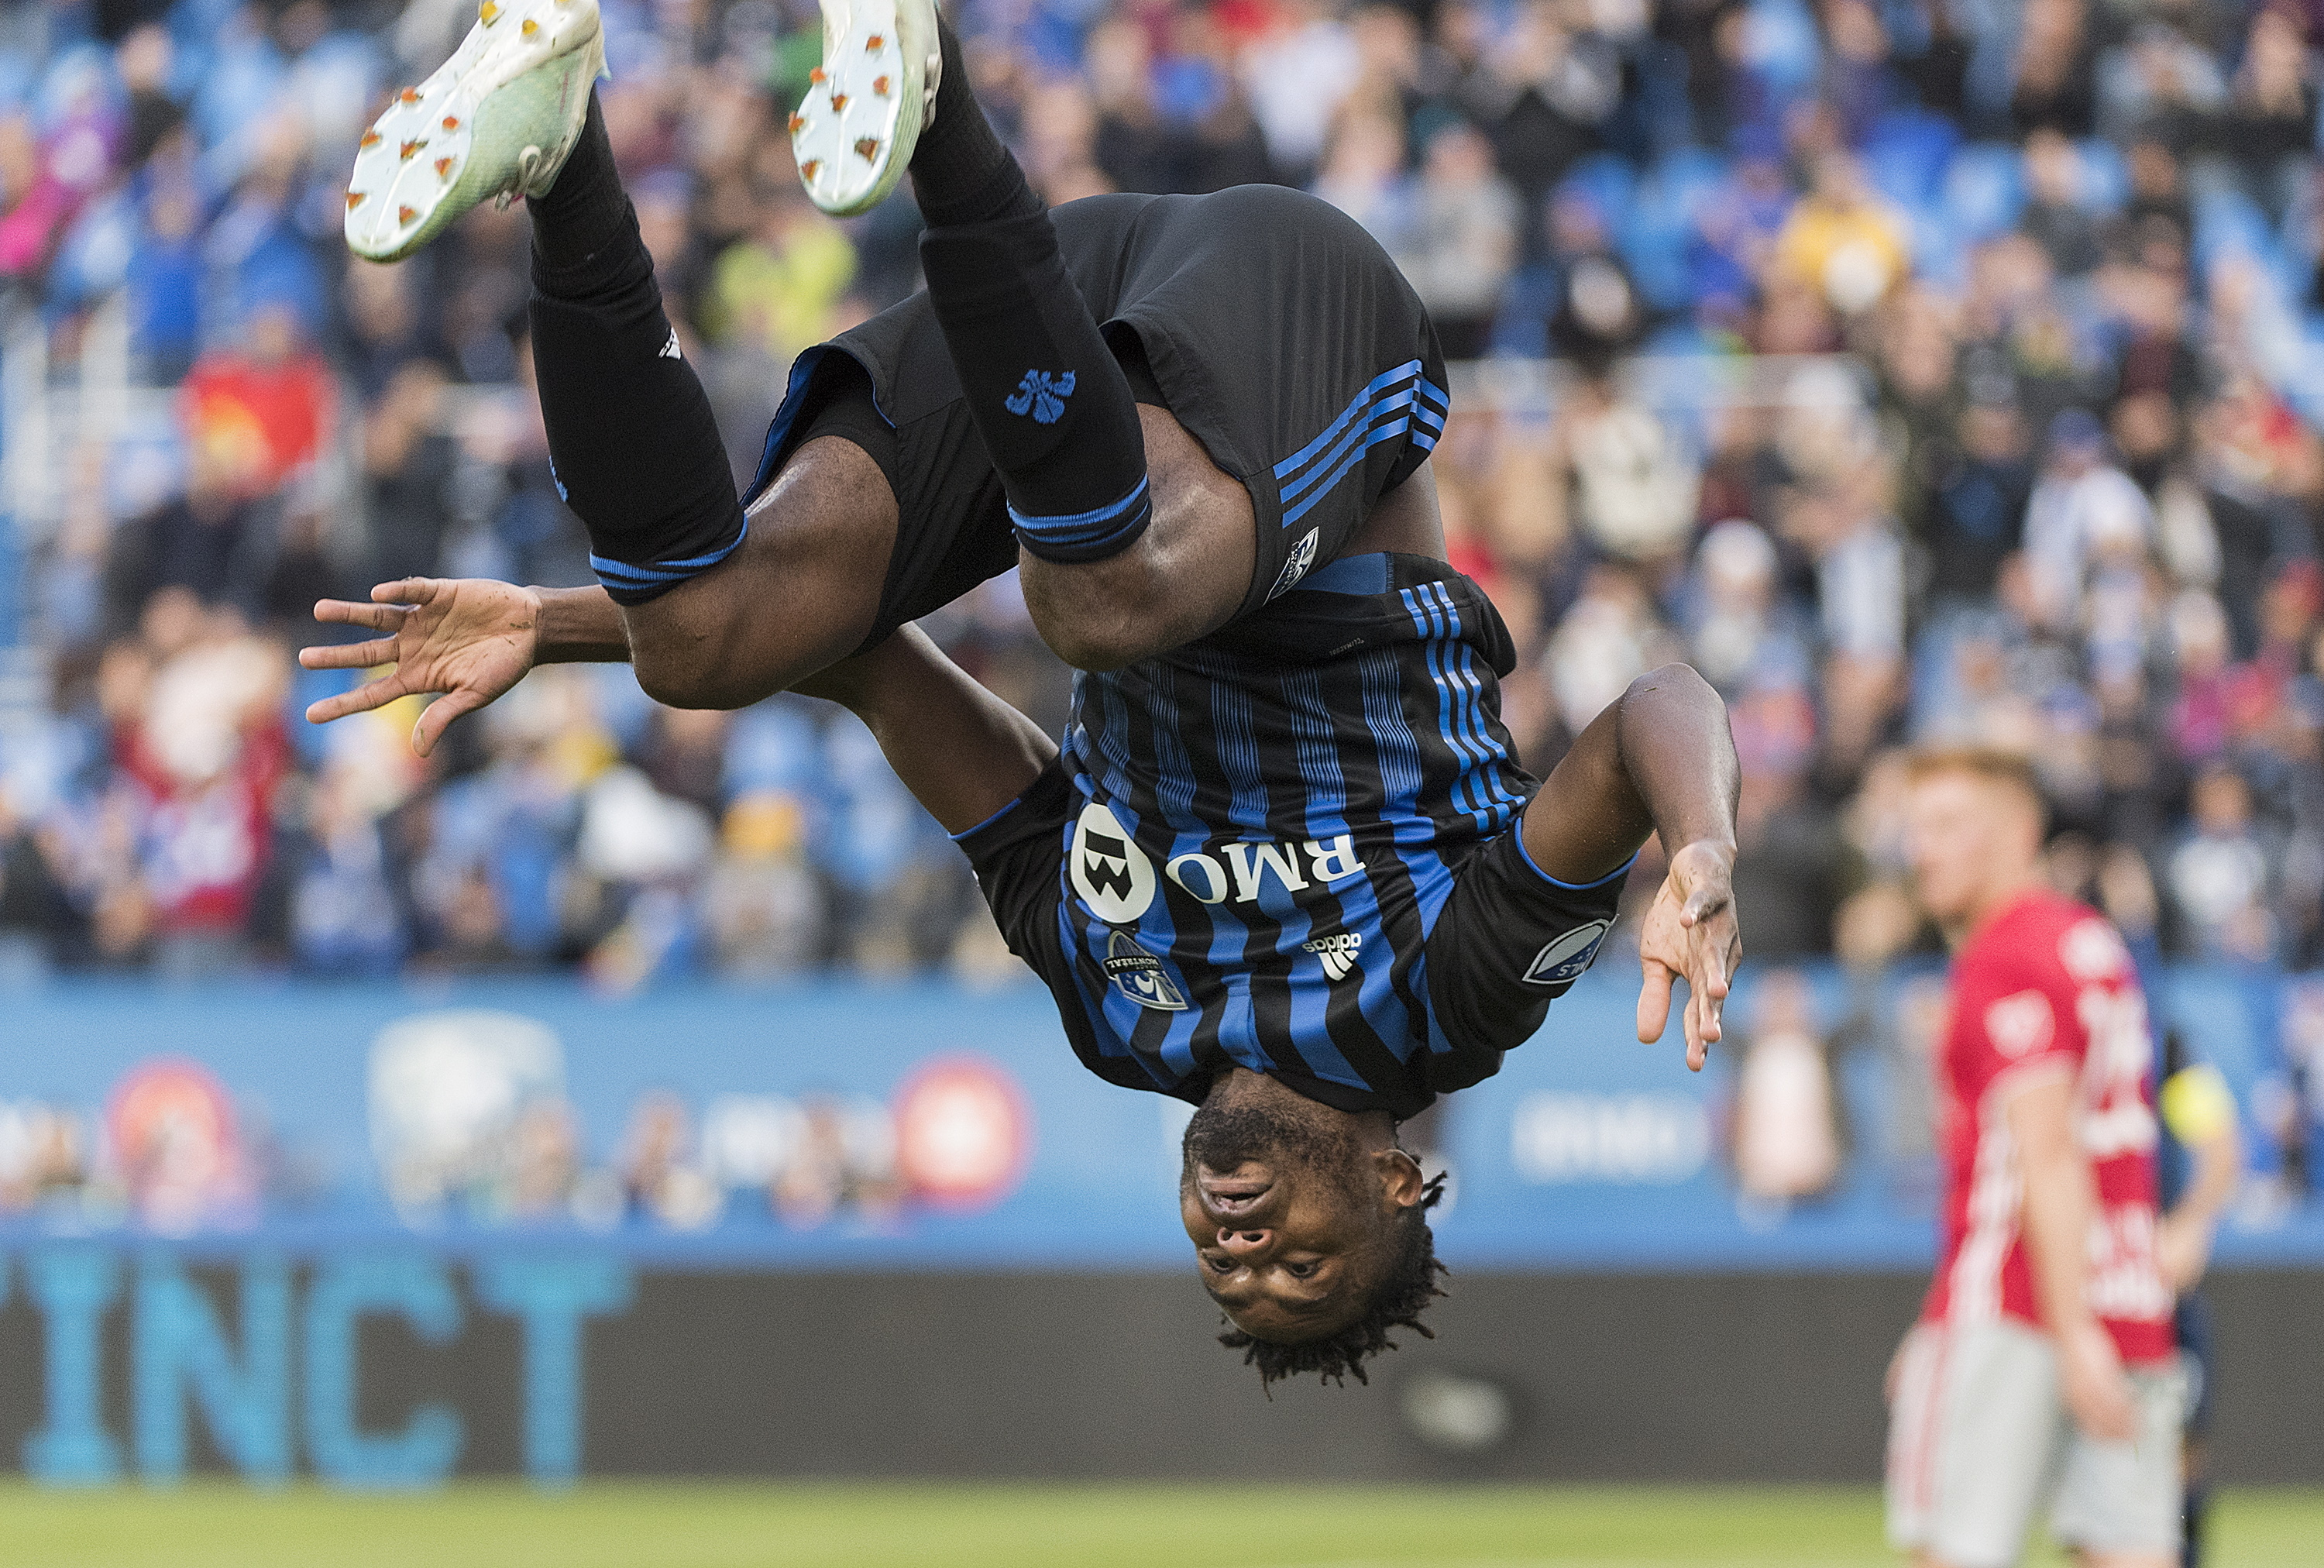 Orji Okwonkwo leads Impact over Red Bulls, 3-0